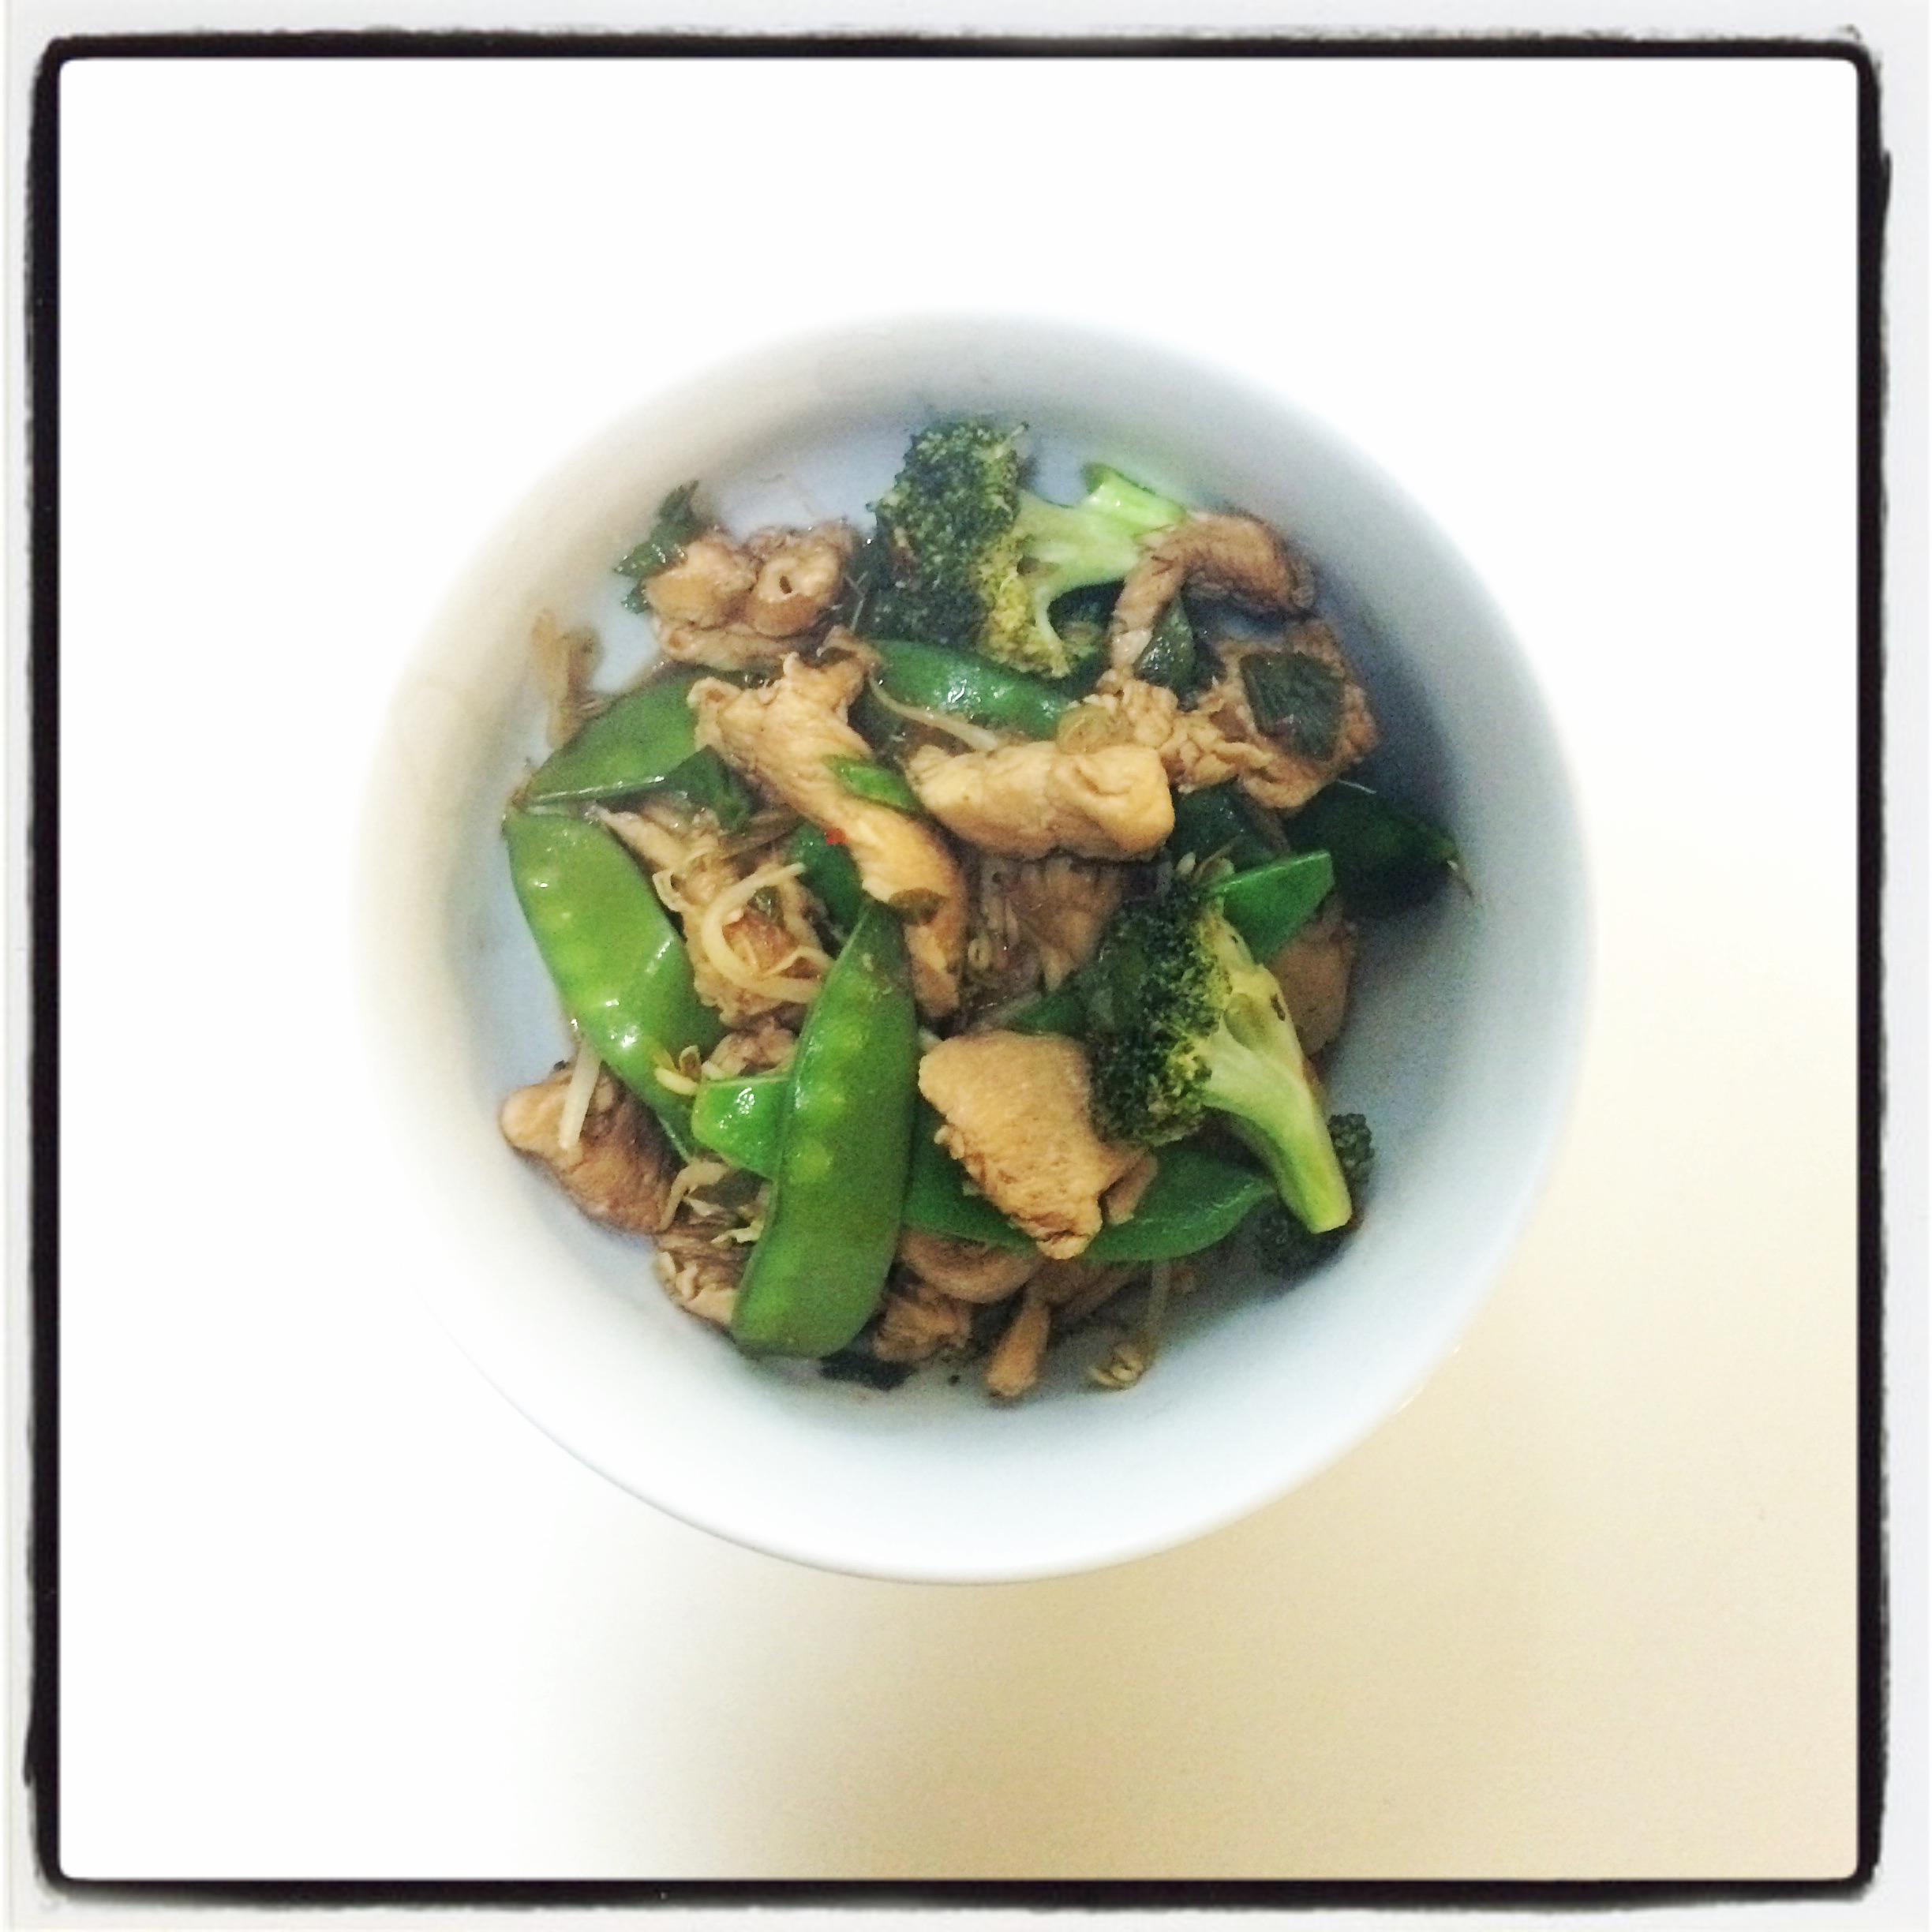 CHICKEN STIR FRY WITH SPROUTS, BROCCOLI, AND SNAP PEAS